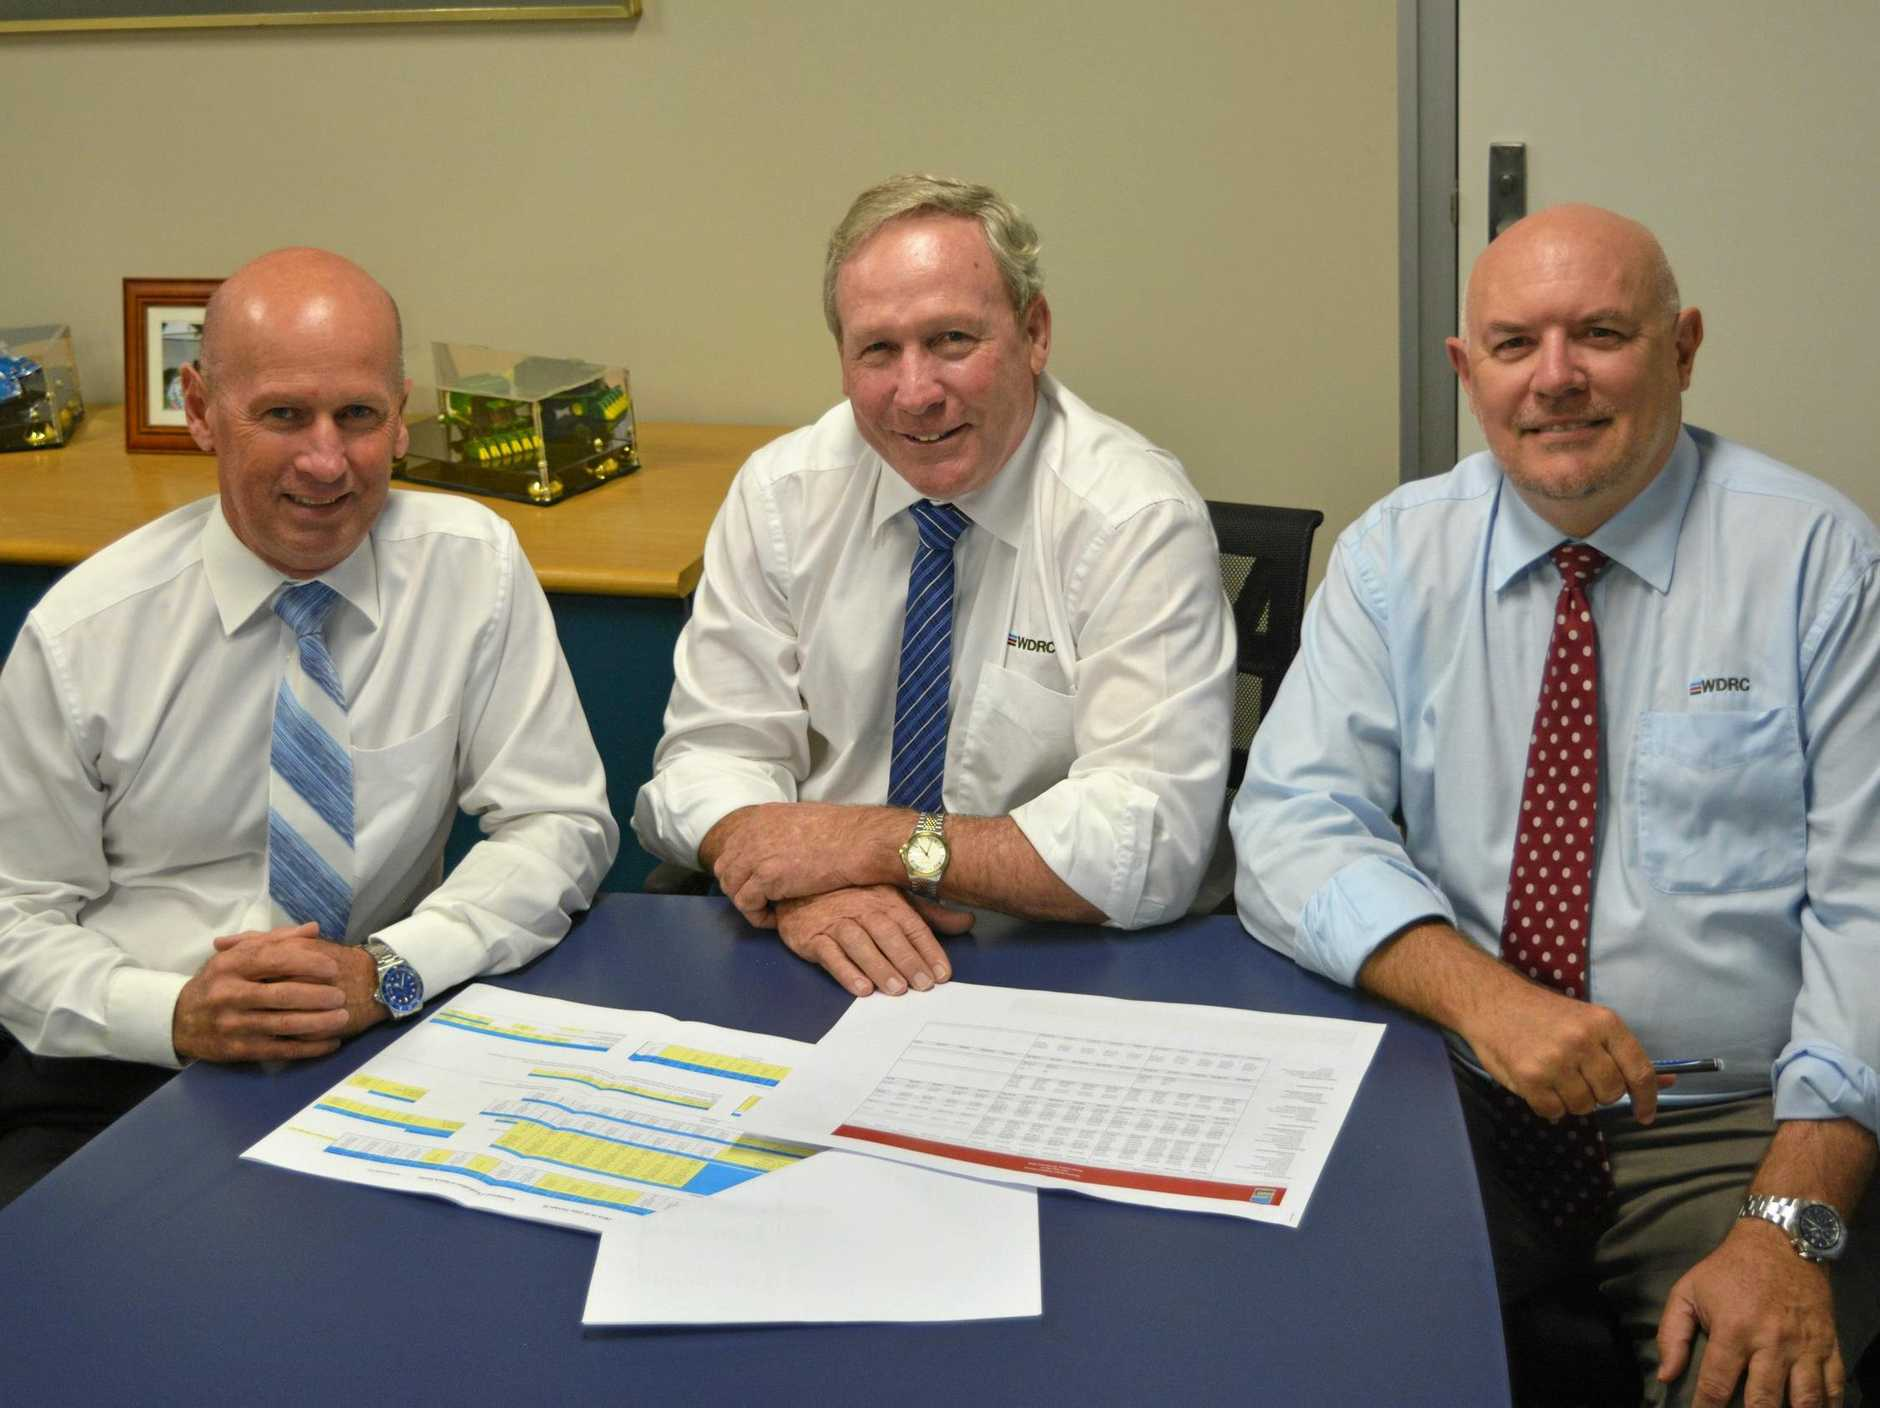 DEBT FREE: Councillor Ian Rasmussen, Mayor Paul McVeigh and CEO Ross Musgrove have worked hard to relieve the council of their debt.